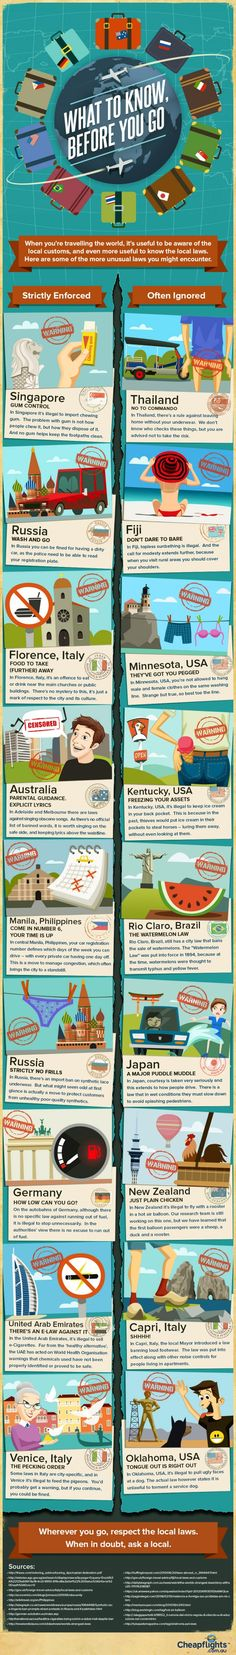 Travel and Trip infographic When you are traveling the world, it's useful to be aware of local customs –. Infographic Description When you are traveling Places To Travel, Travel Destinations, Places To Go, Travel Info, Travel Tips, Travel Hacks, Travel Advice, Voyager Malin, Travel Around The World